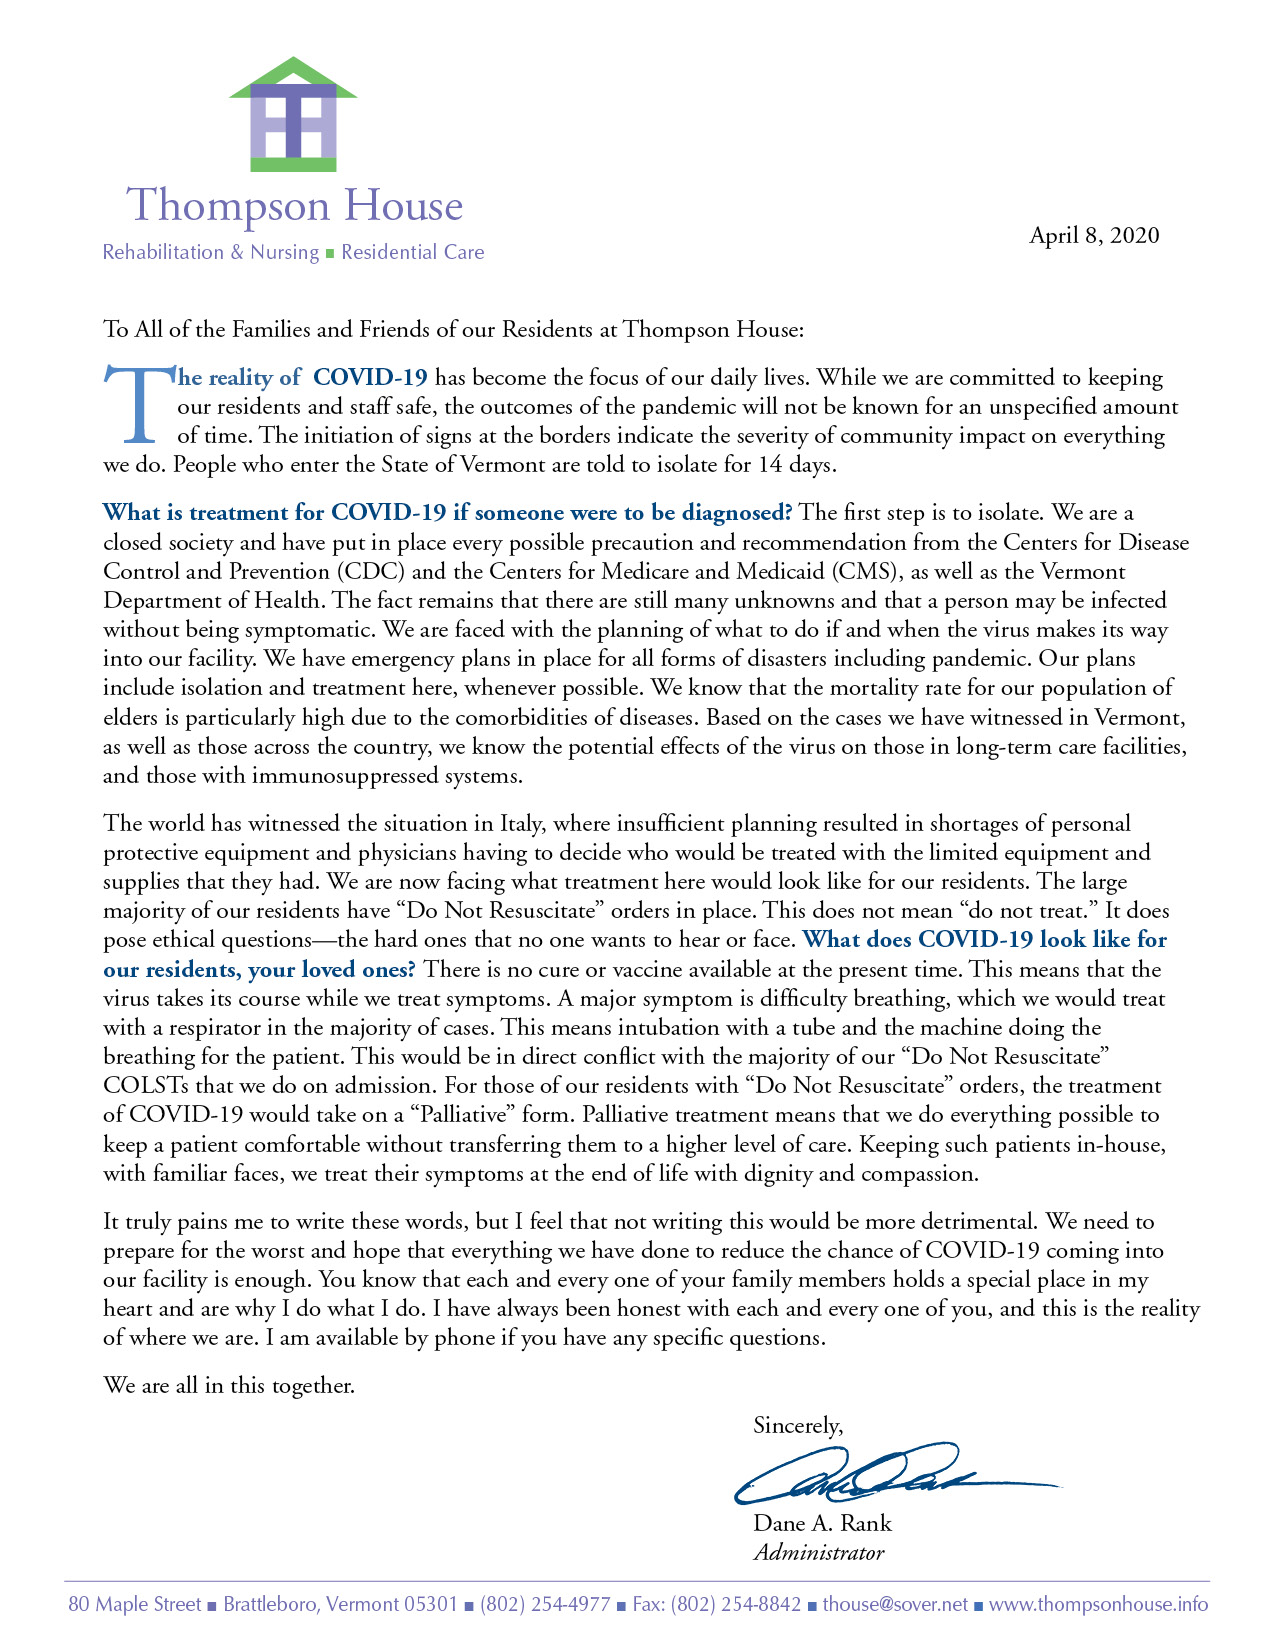 Letter to Thompson House Friends & Family